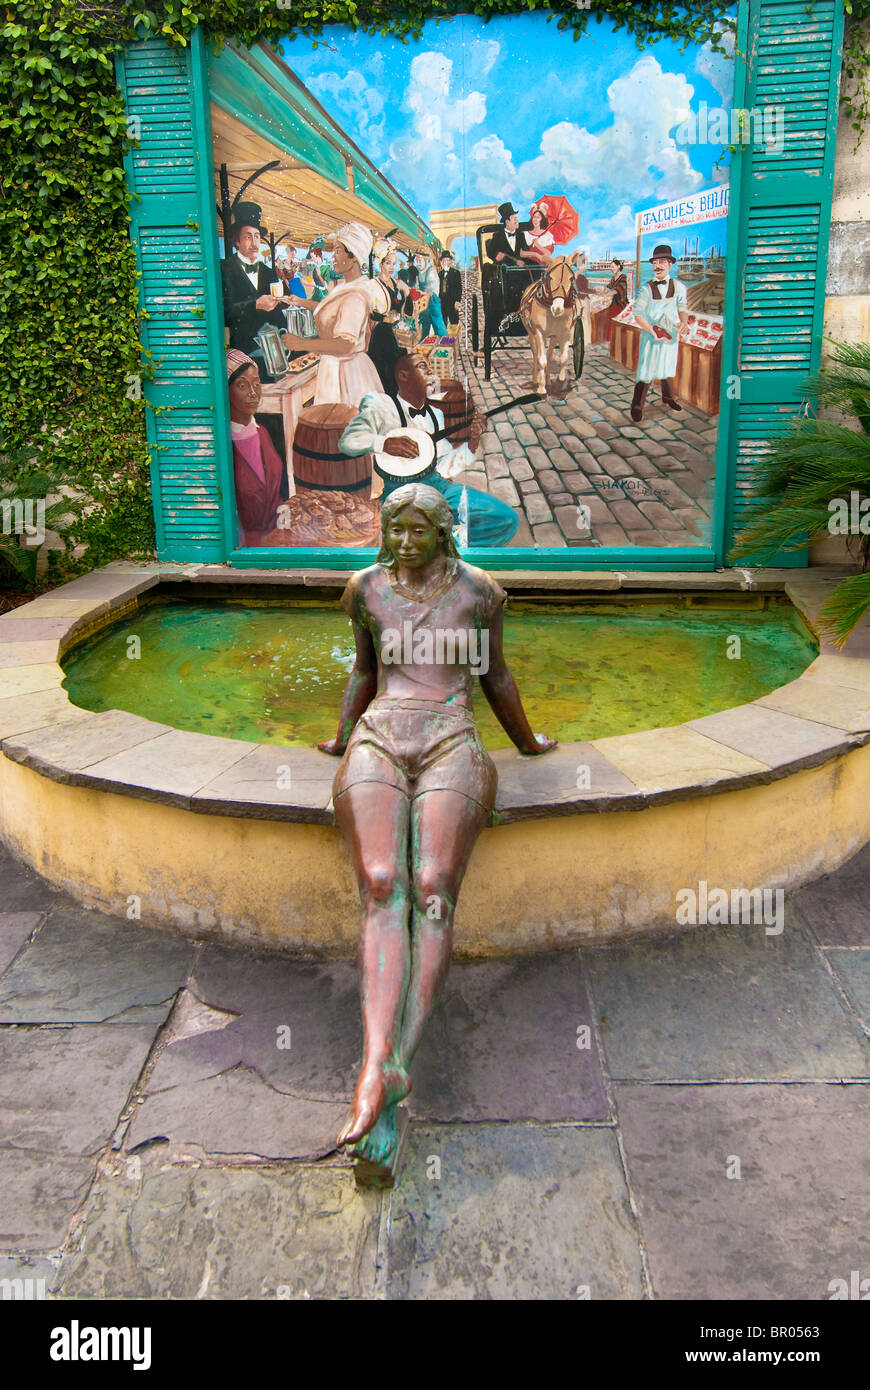 French Market fountain, statue and painting in the French Quarter of New Orleans, Louisiana, USA - Stock Image